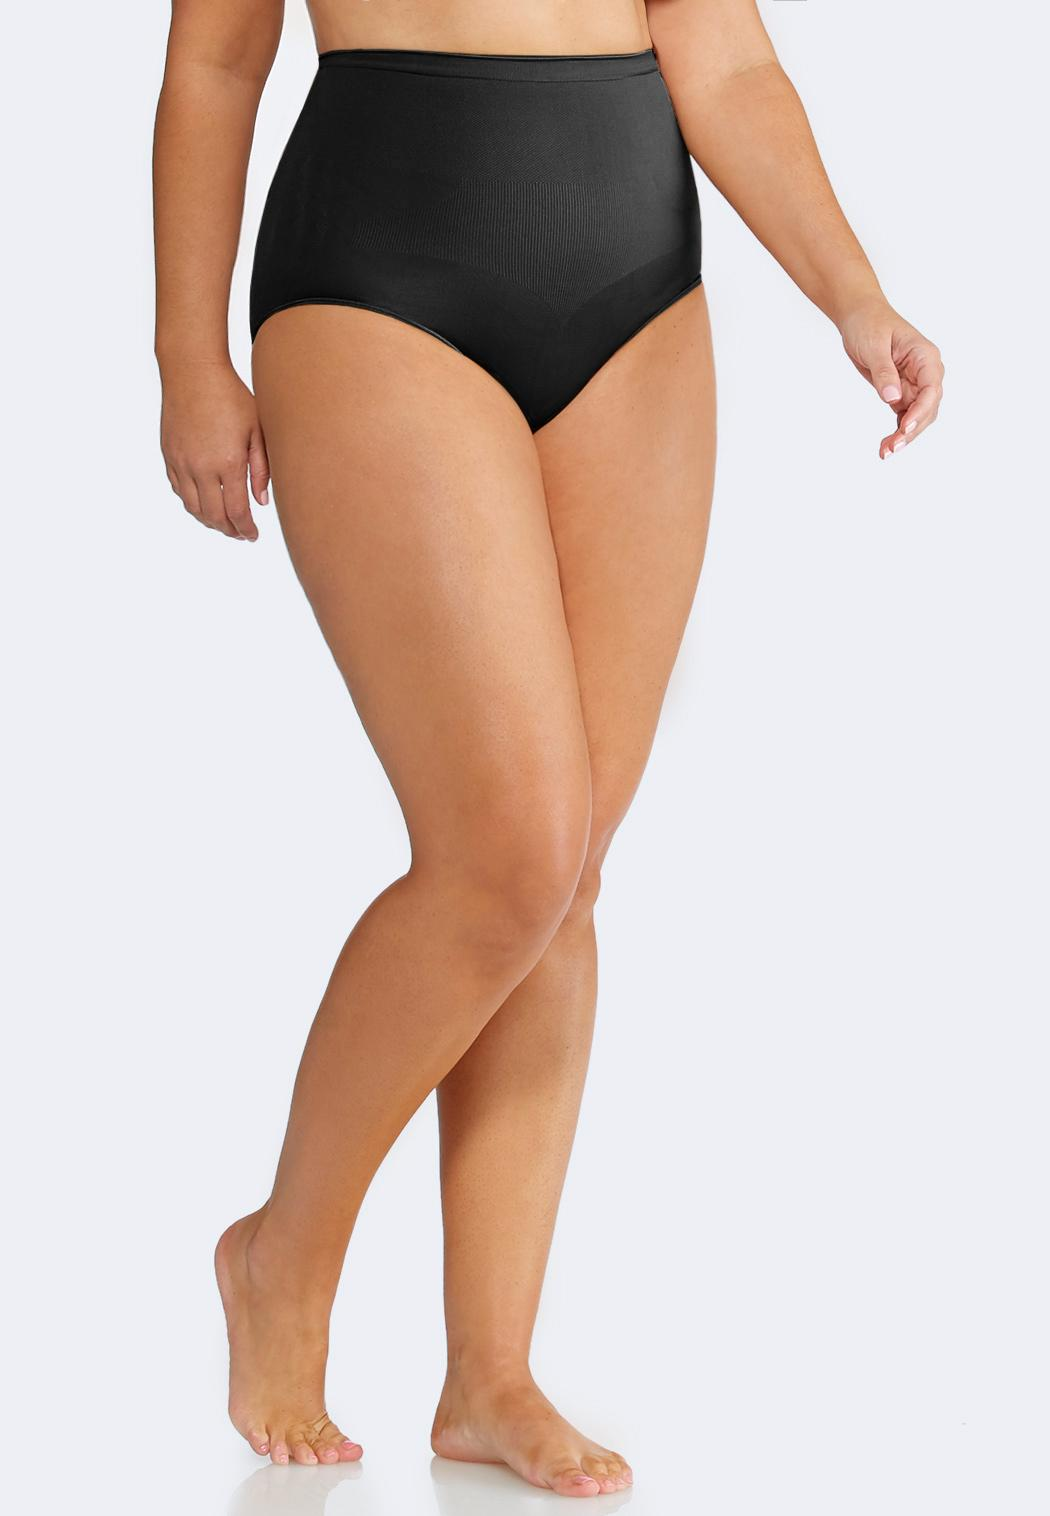 Plus Extended Black Seamless Control Panty